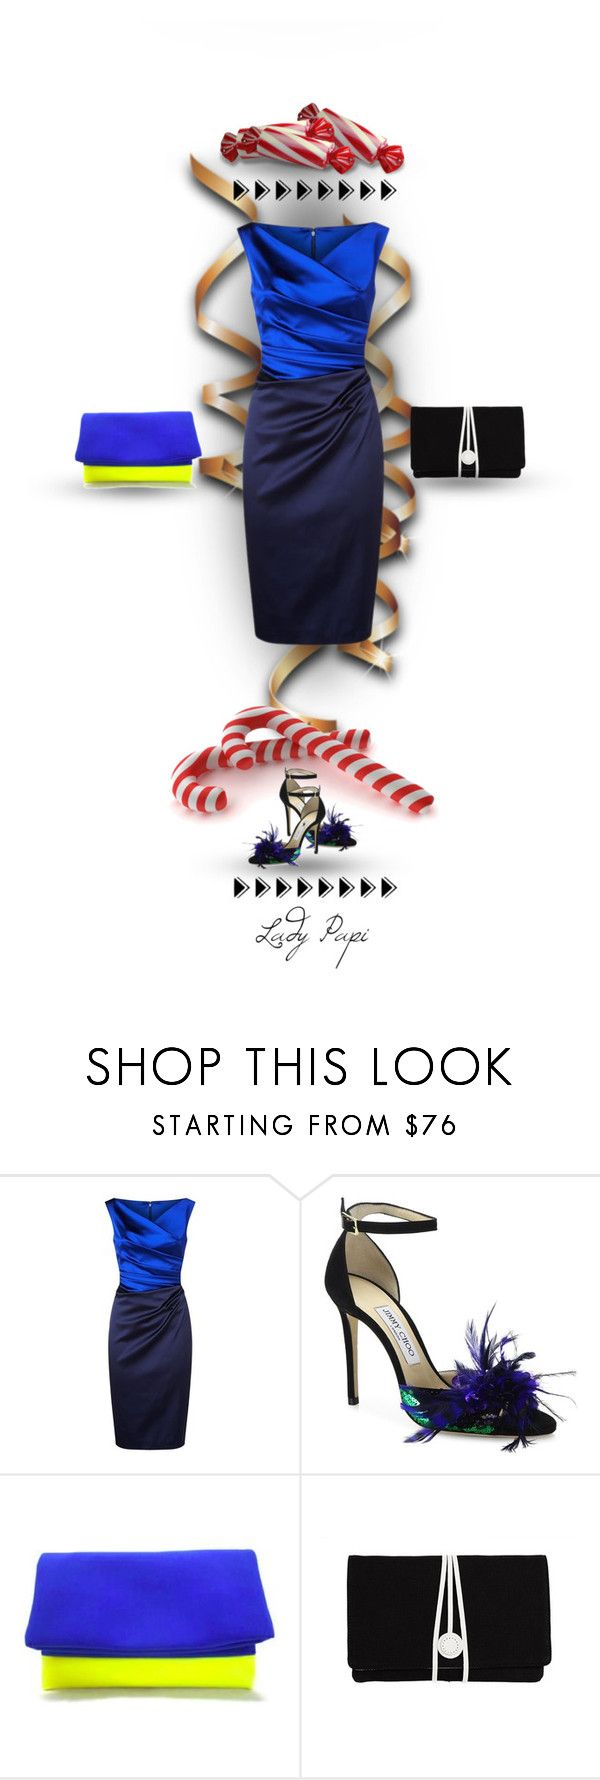 """""""Sweet Classic"""" by papillon-ze-cat ❤ liked on Polyvore featuring Talbot Runhof, Jimmy Choo, FC Select Design and Torula Bags"""